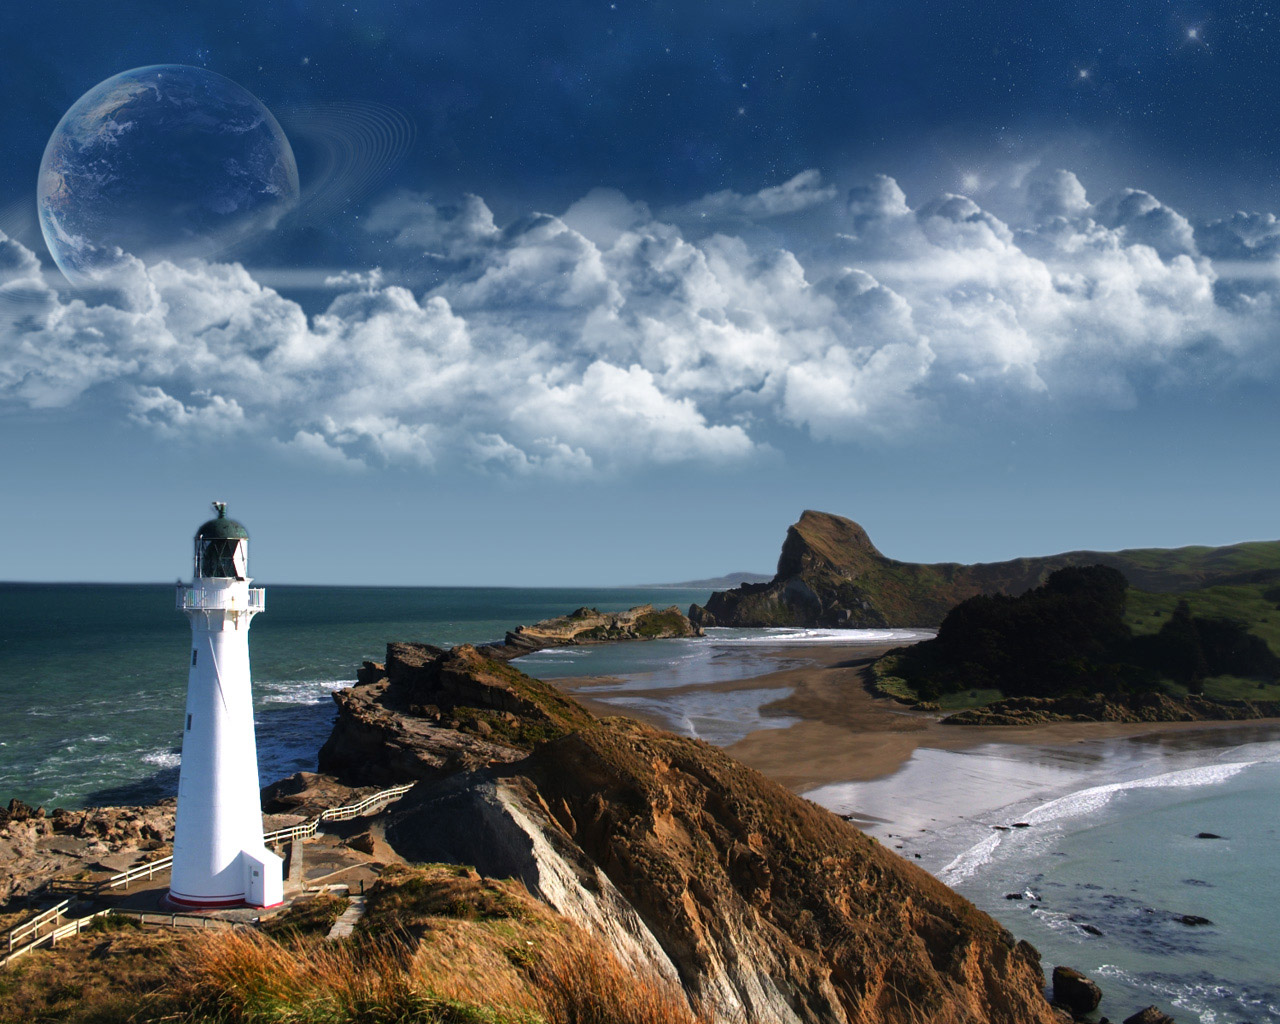 Beacon Located on a Coast Wallpapers   HD Wallpapers 24617 1280x1024